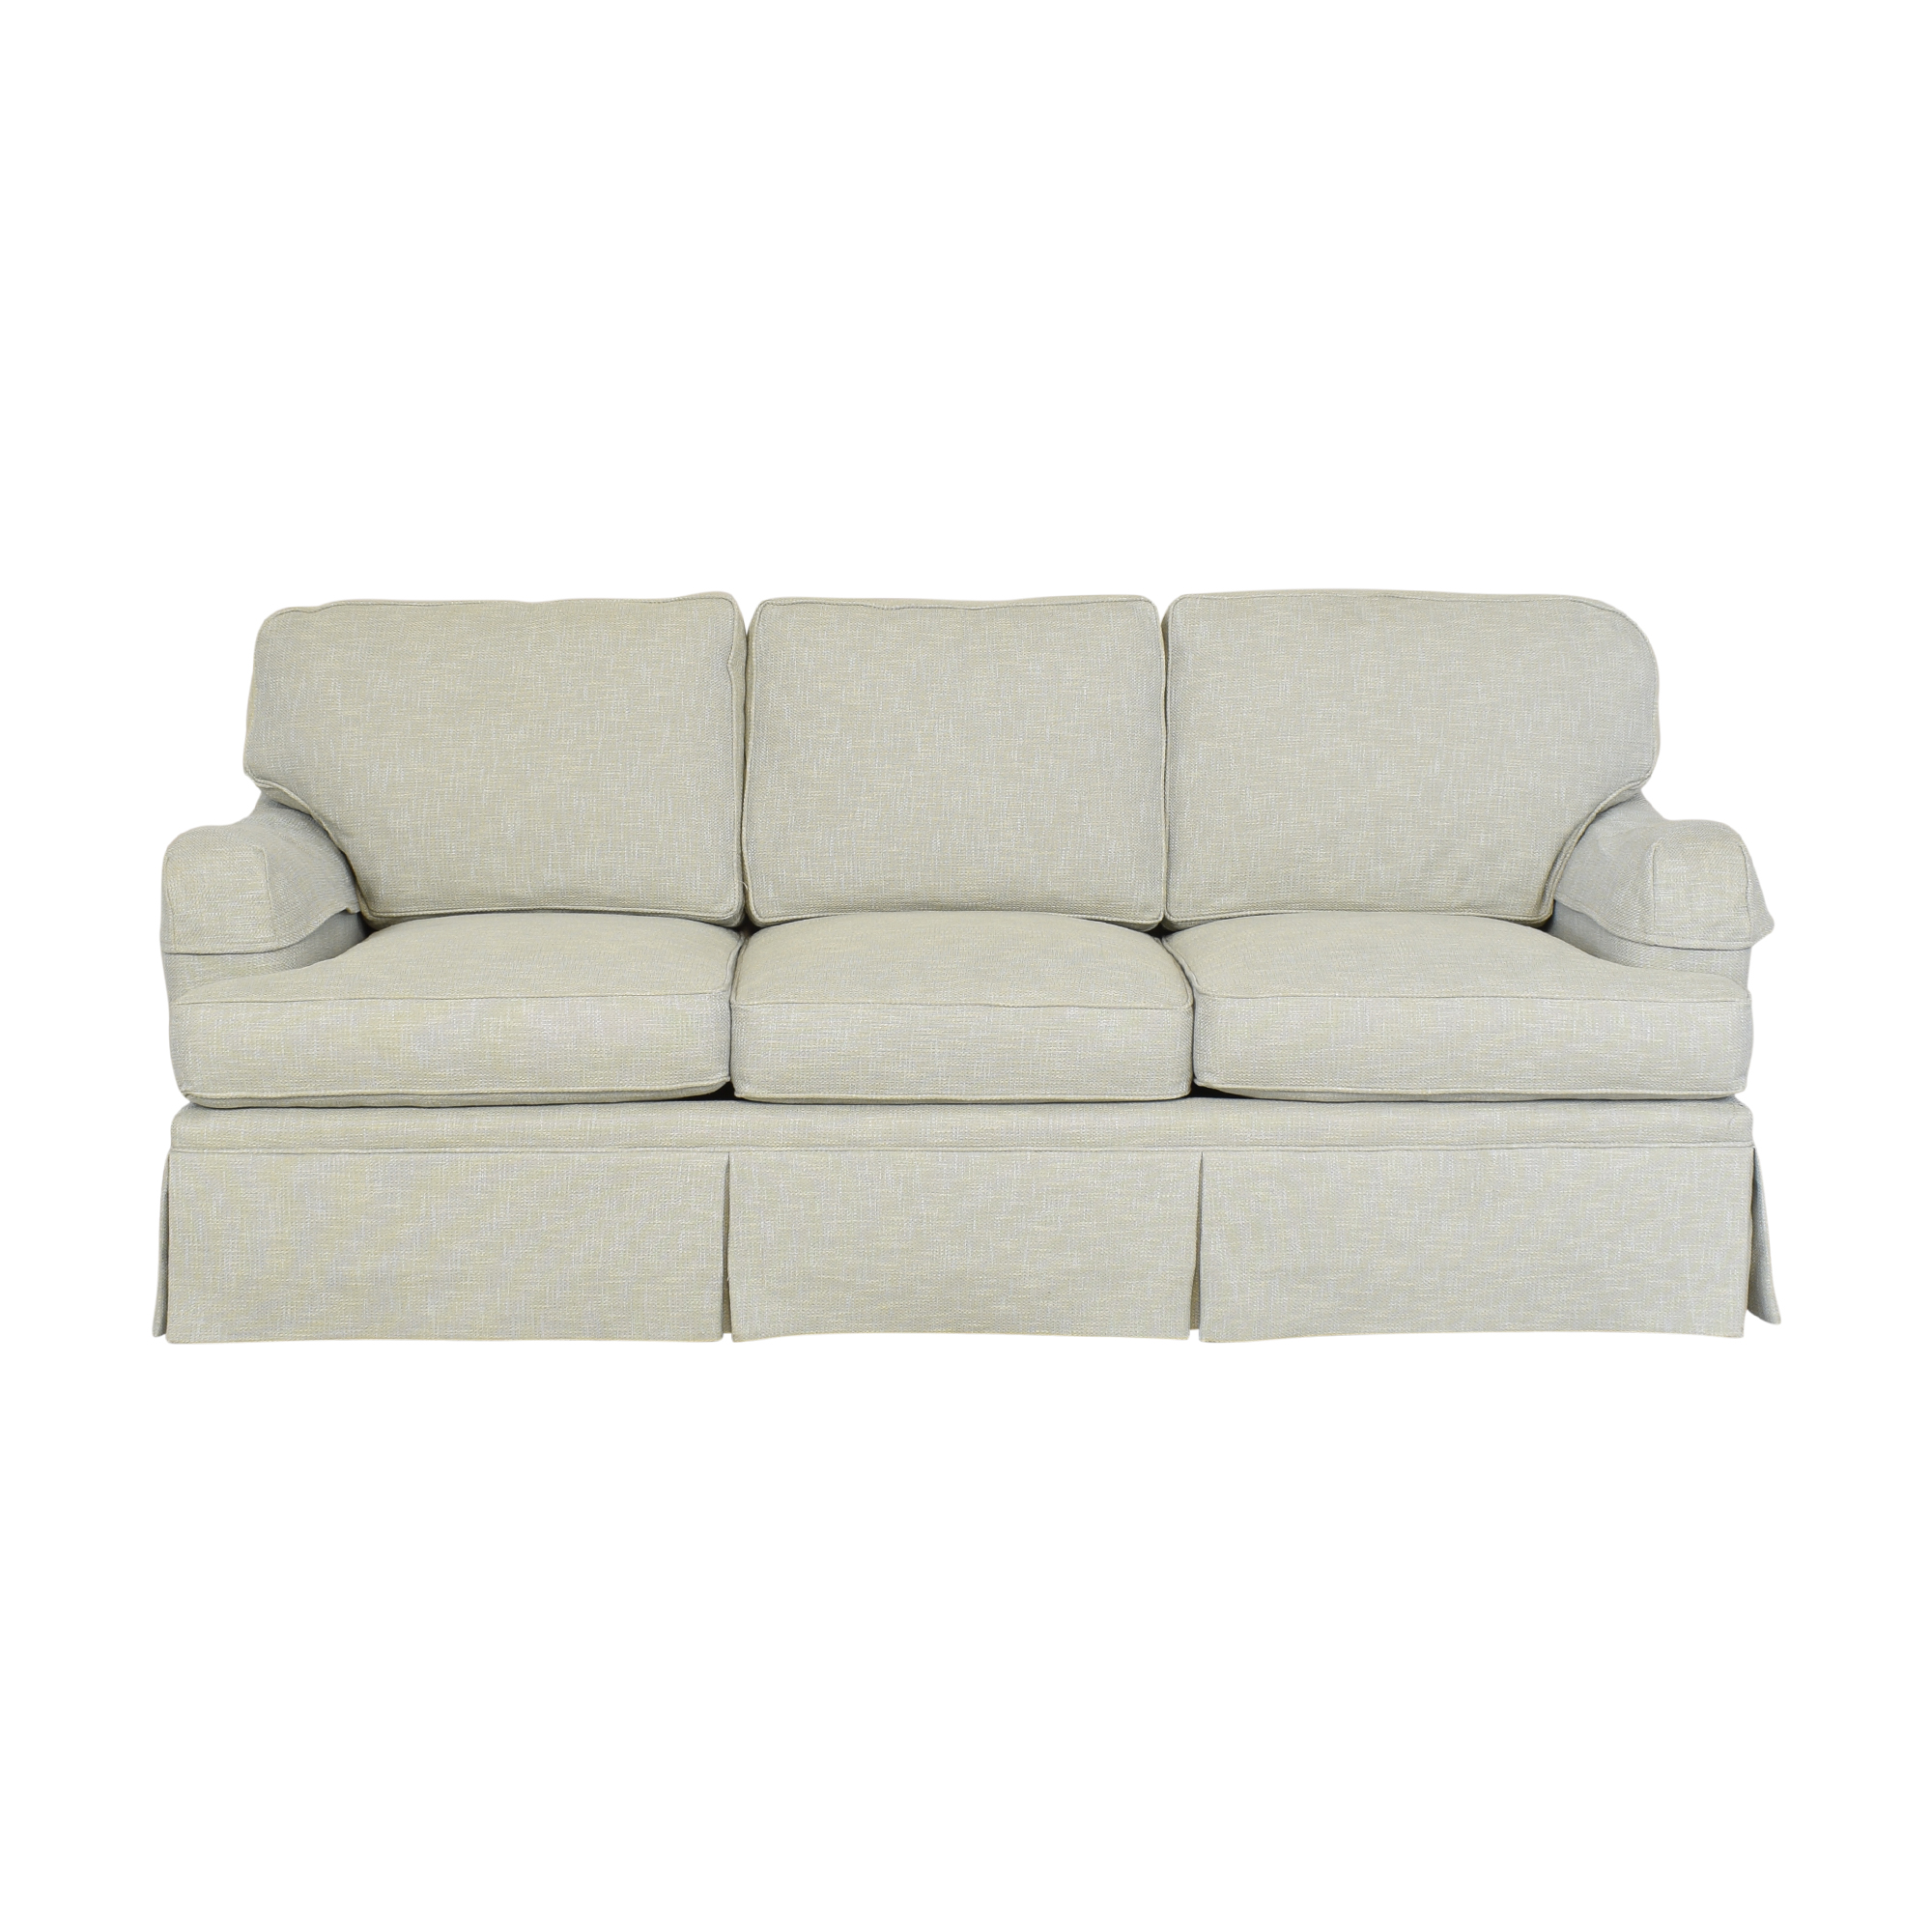 Henredon Upholstery Collection Sofa Henredon Furniture